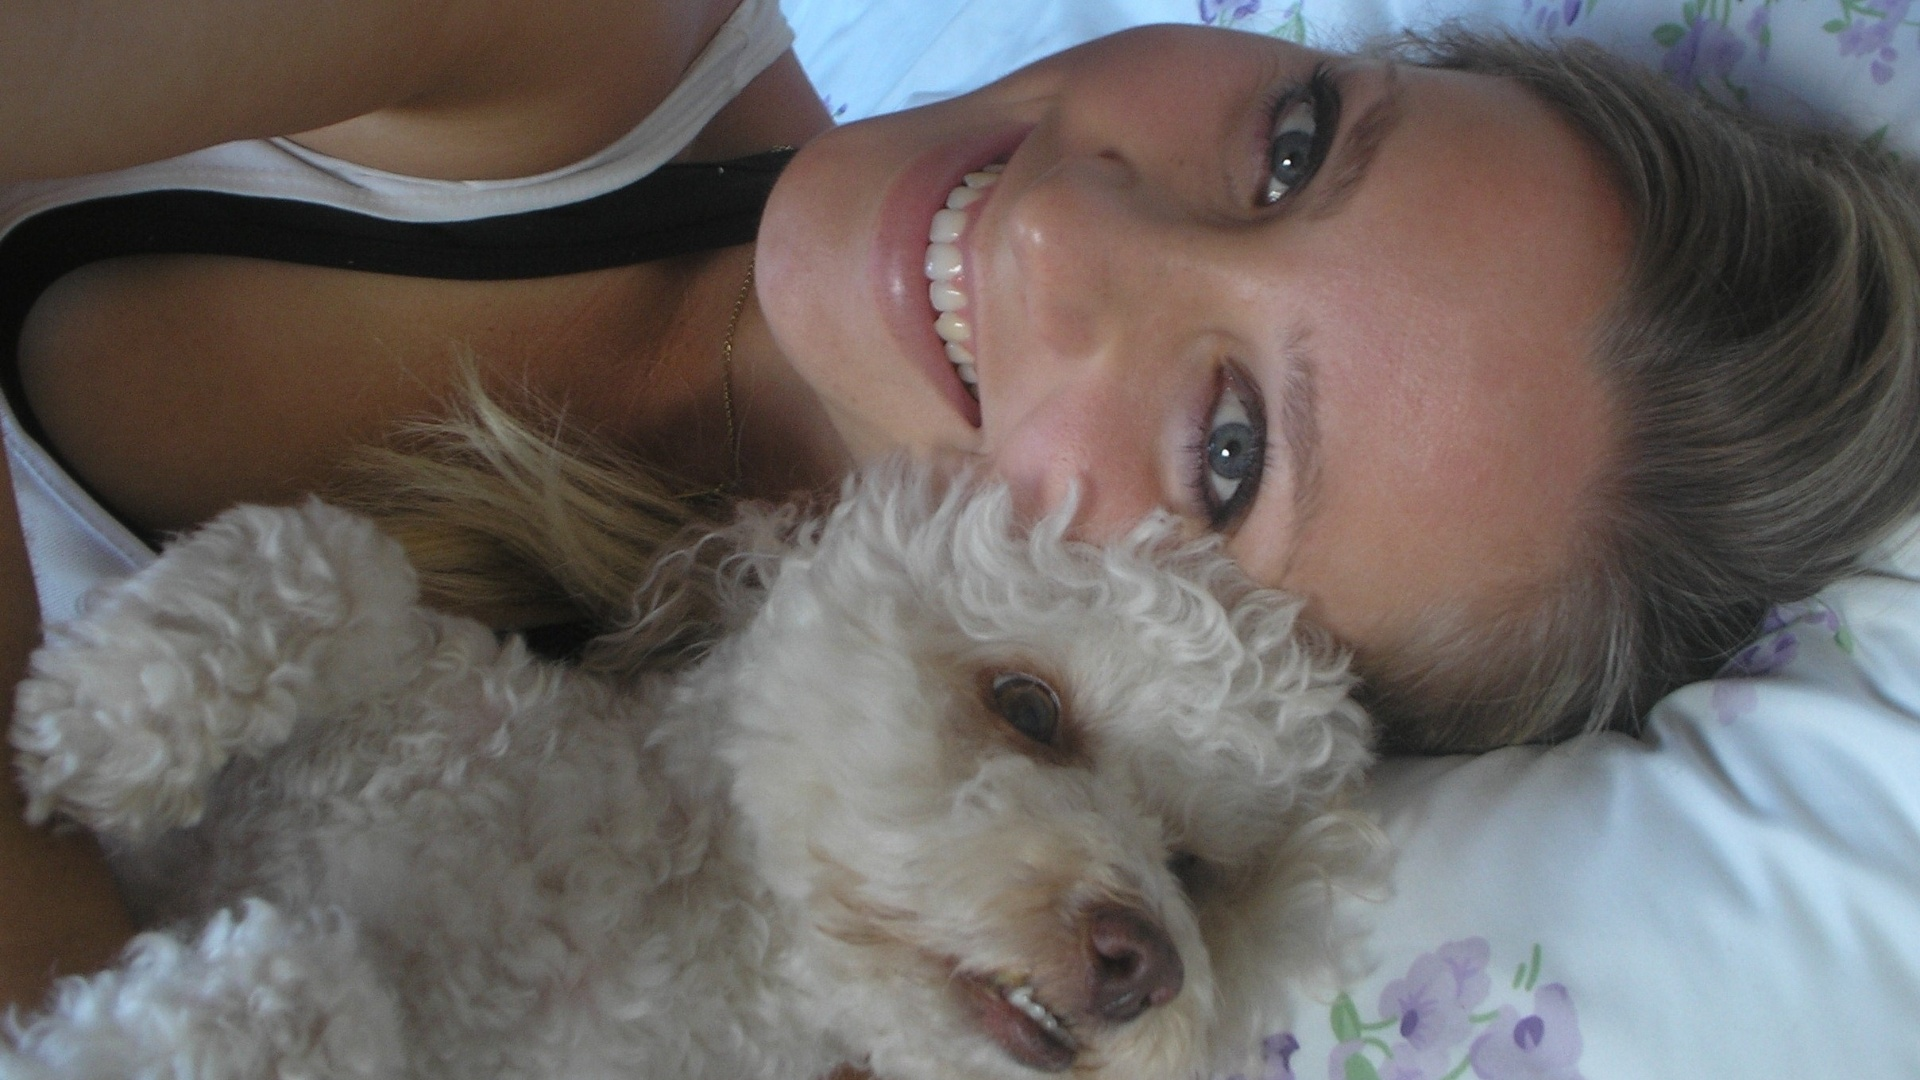 Fernanda Colombo, bandeirinha em Santa Catarina, com o cachorrinho William Bonner